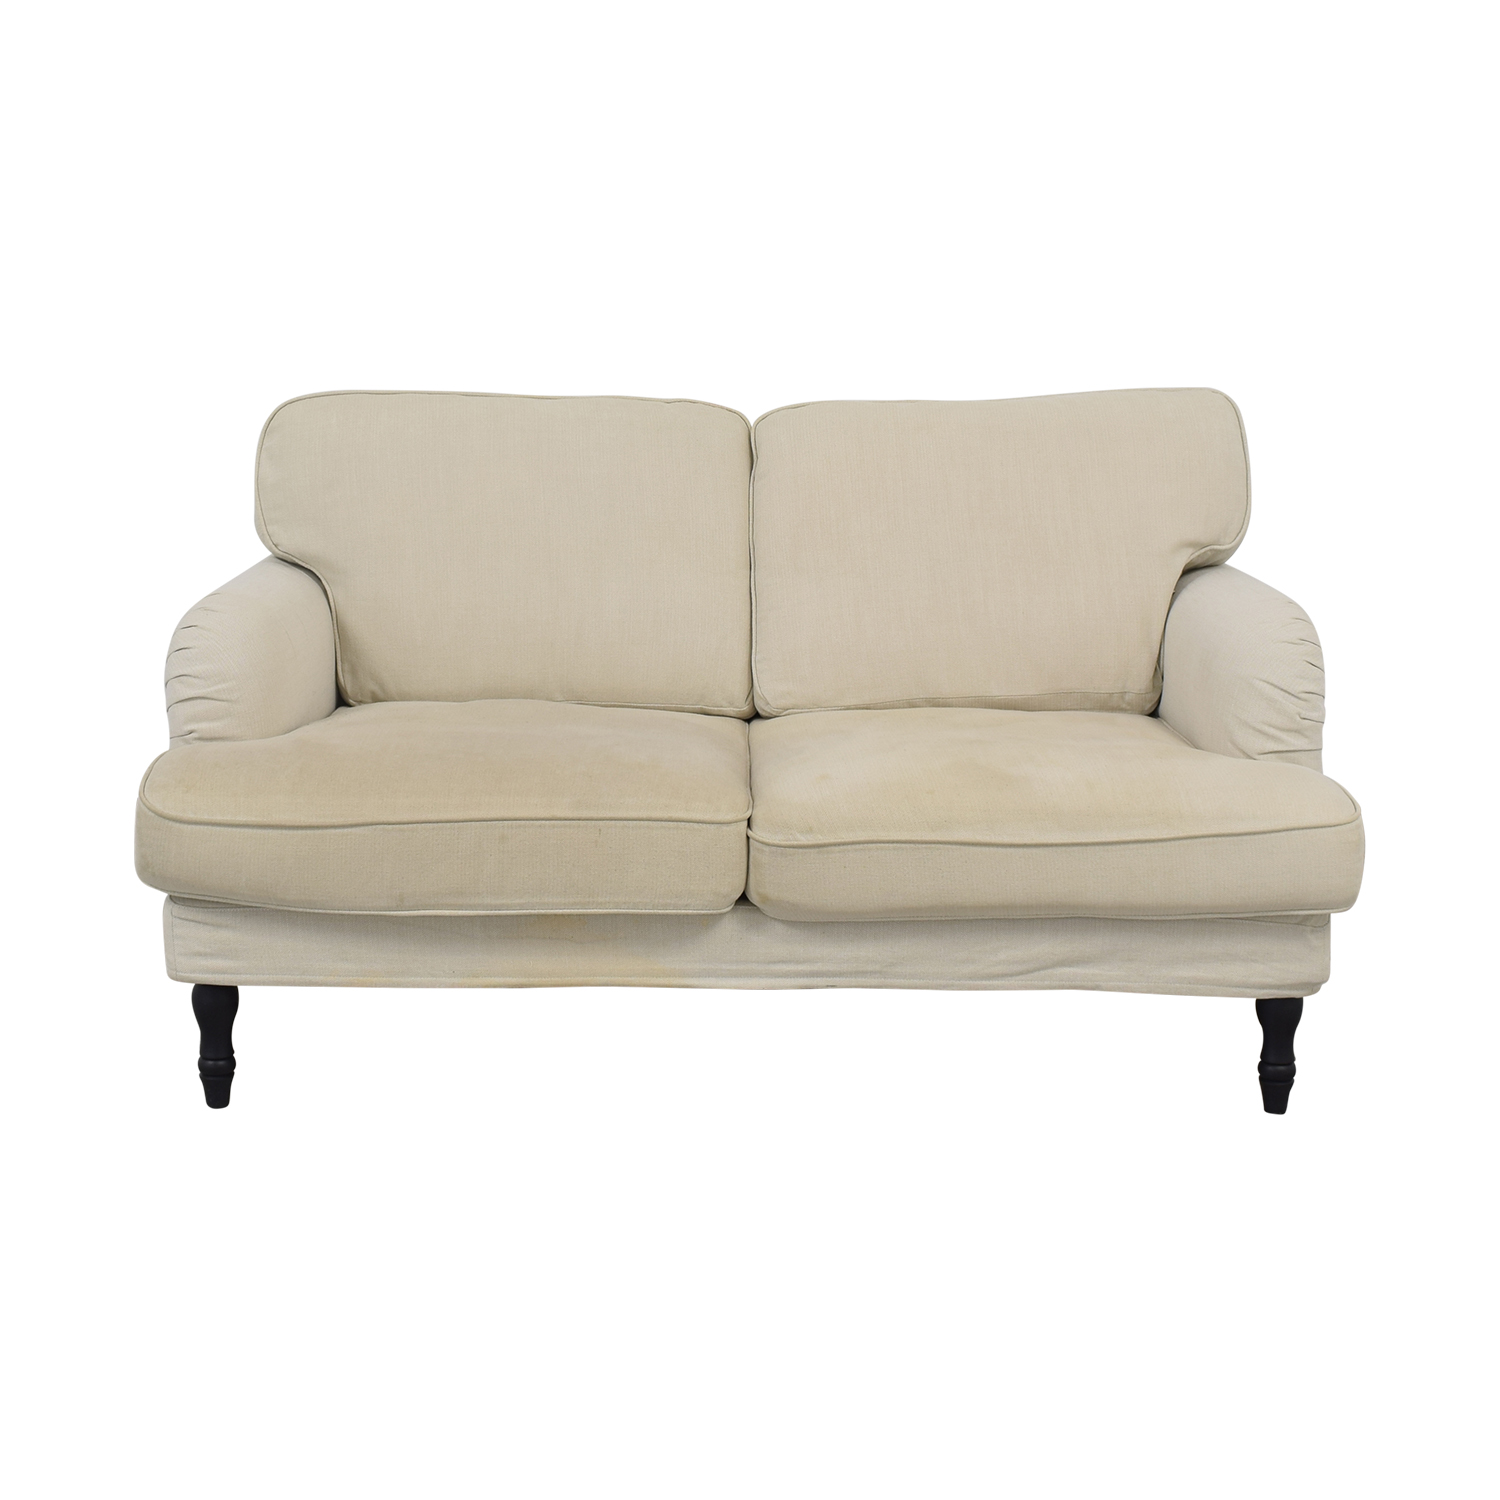 Pottery Barn Two Cushion Sofa / Classic Sofas